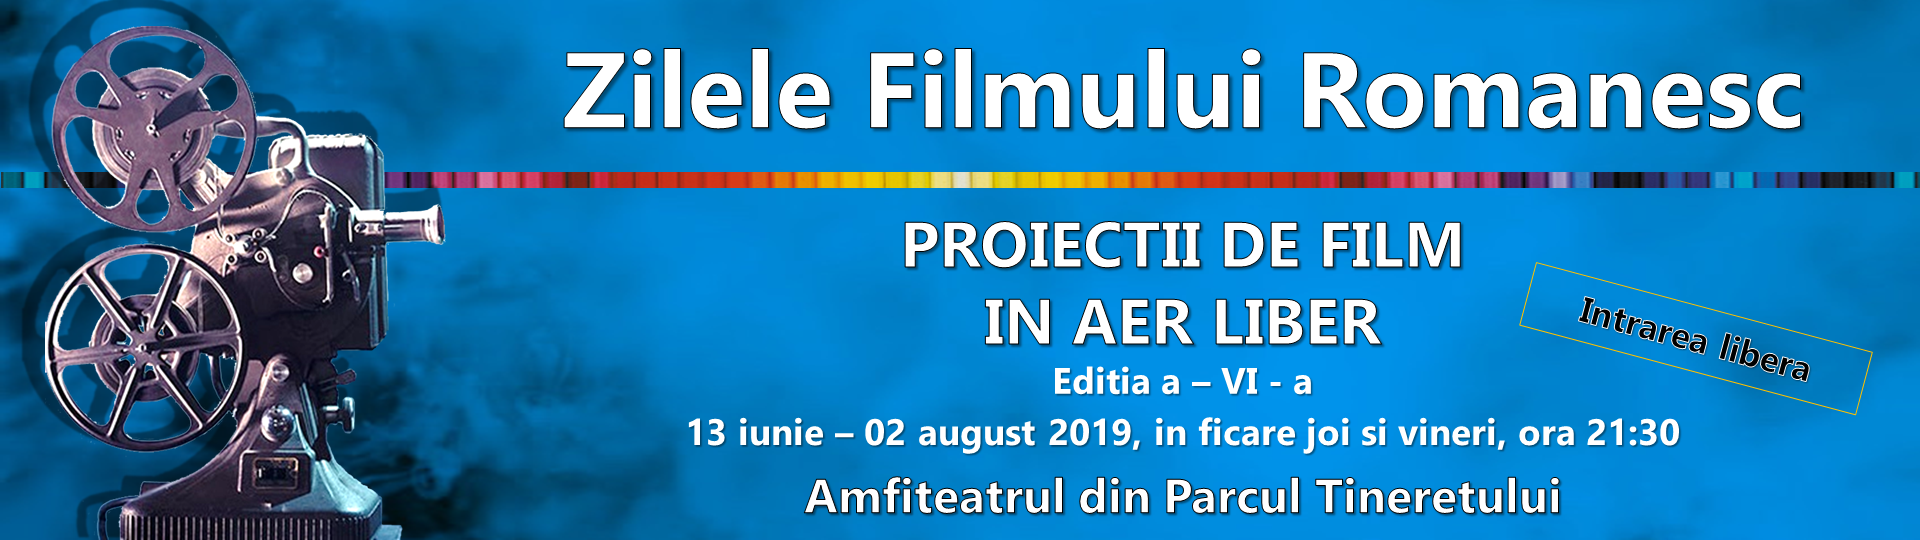 Zile film site 2019 film